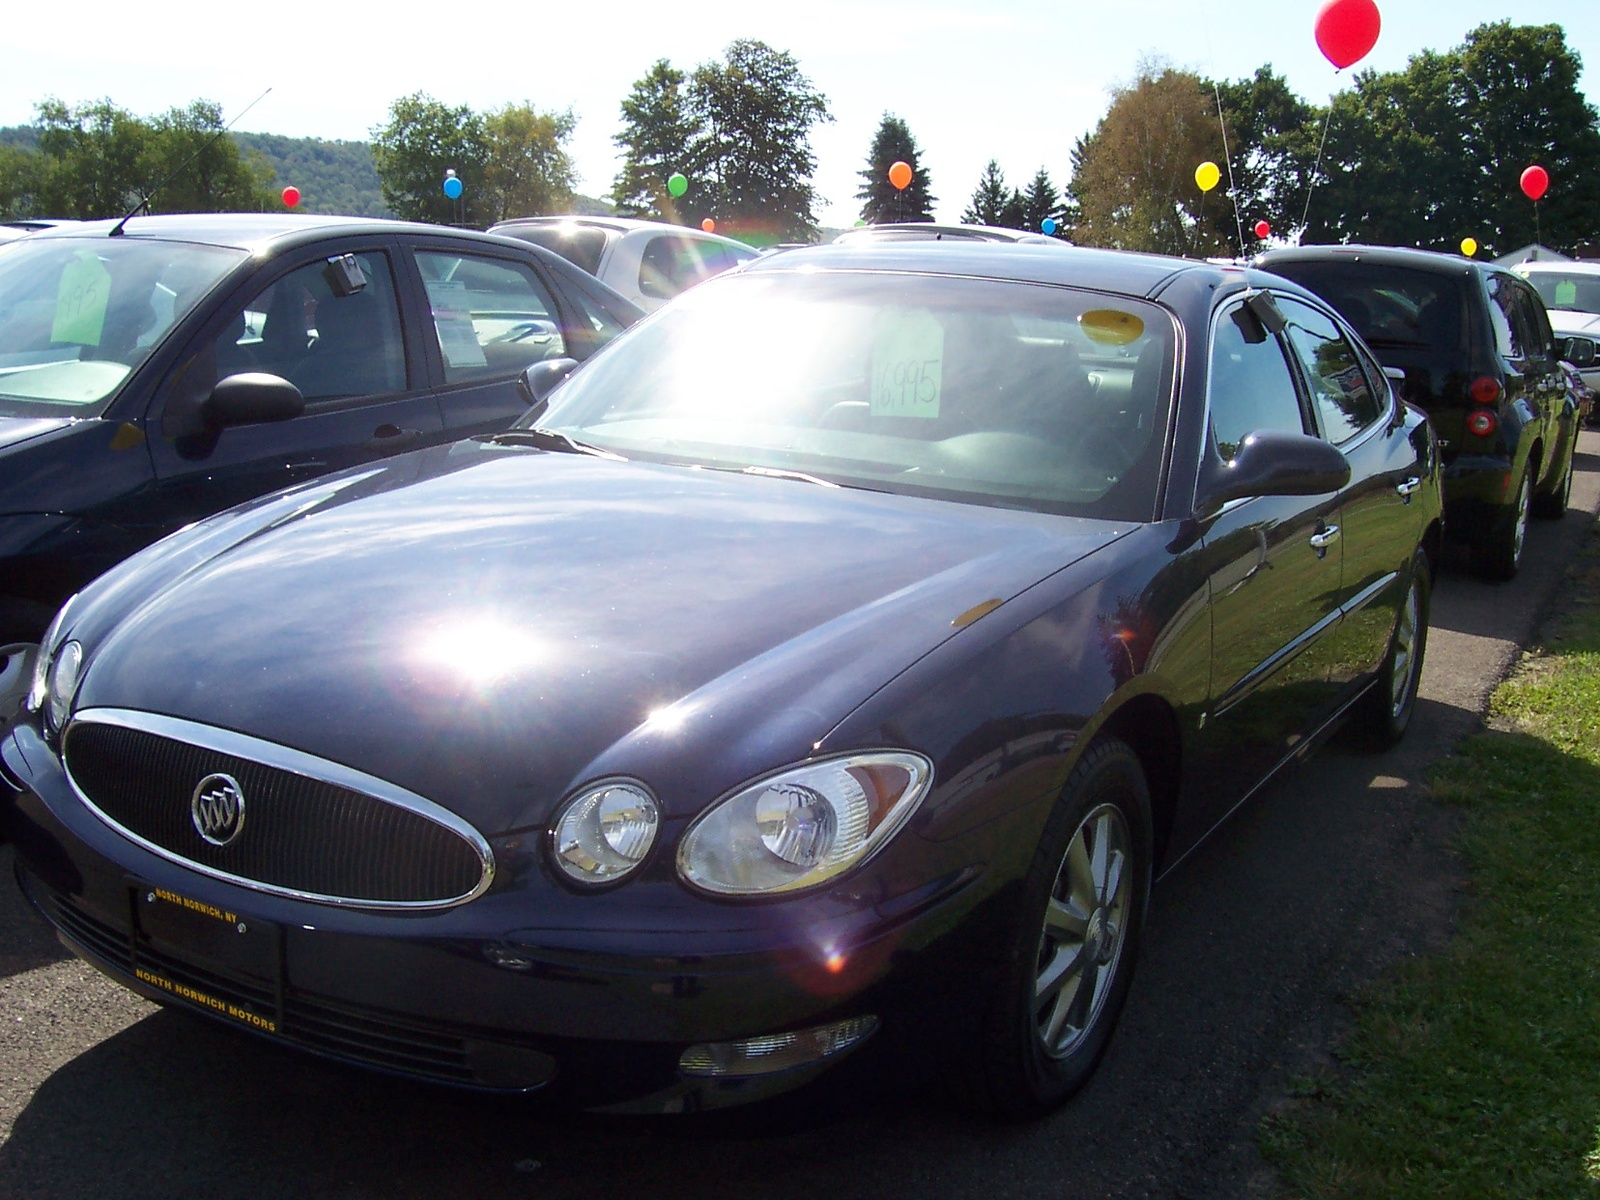 Home » 2007 Buick Lacrosse Cx No Headlights